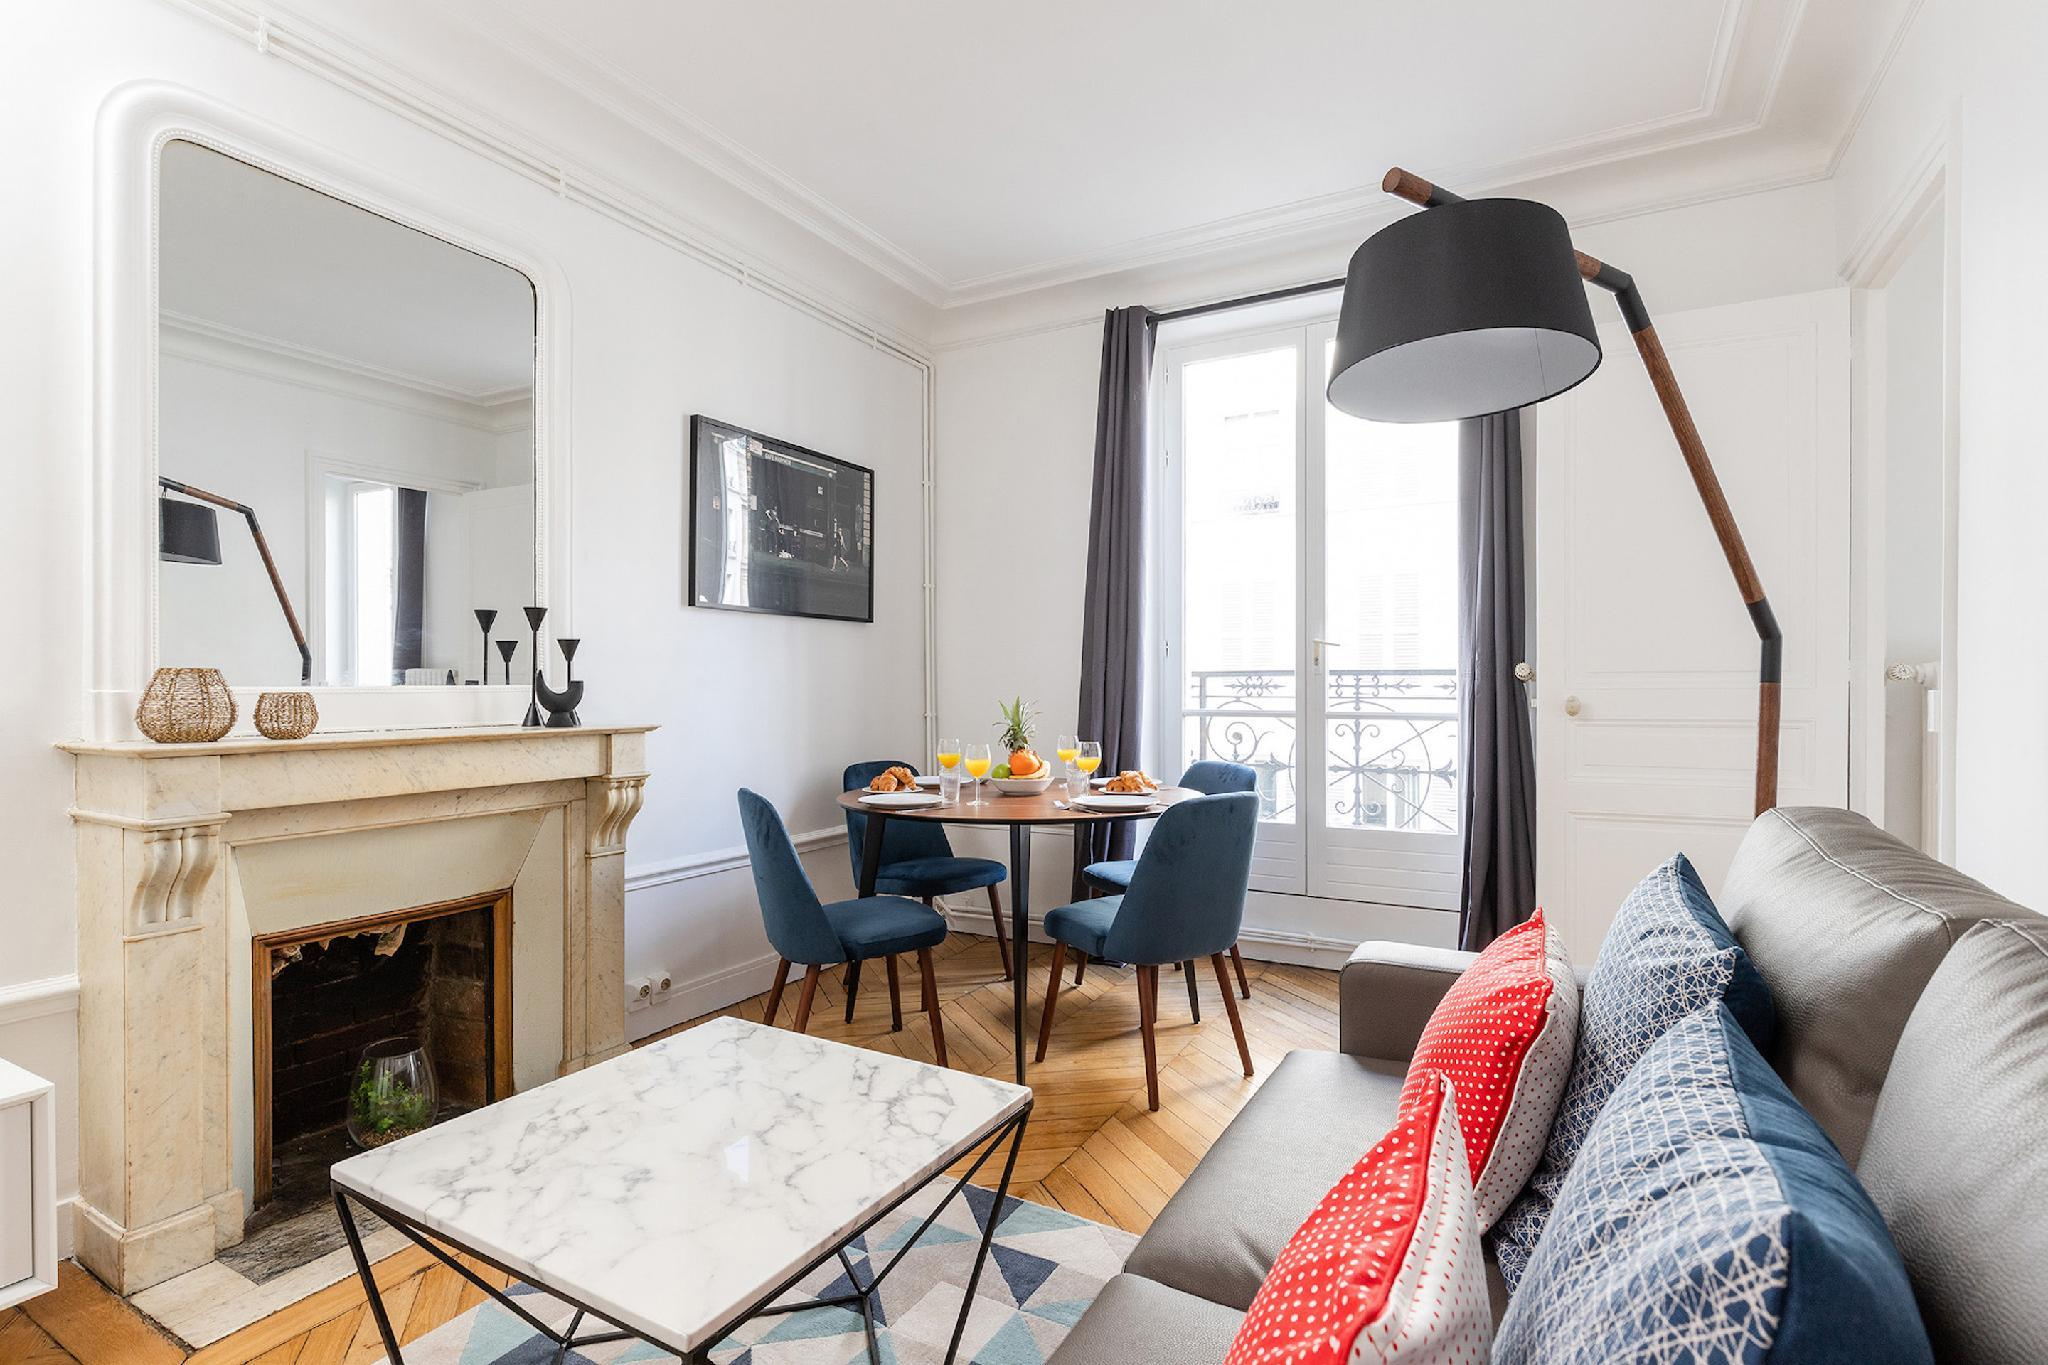 THE SEINE AND LATIN QUARTER LOVELY 1 BR FLAT